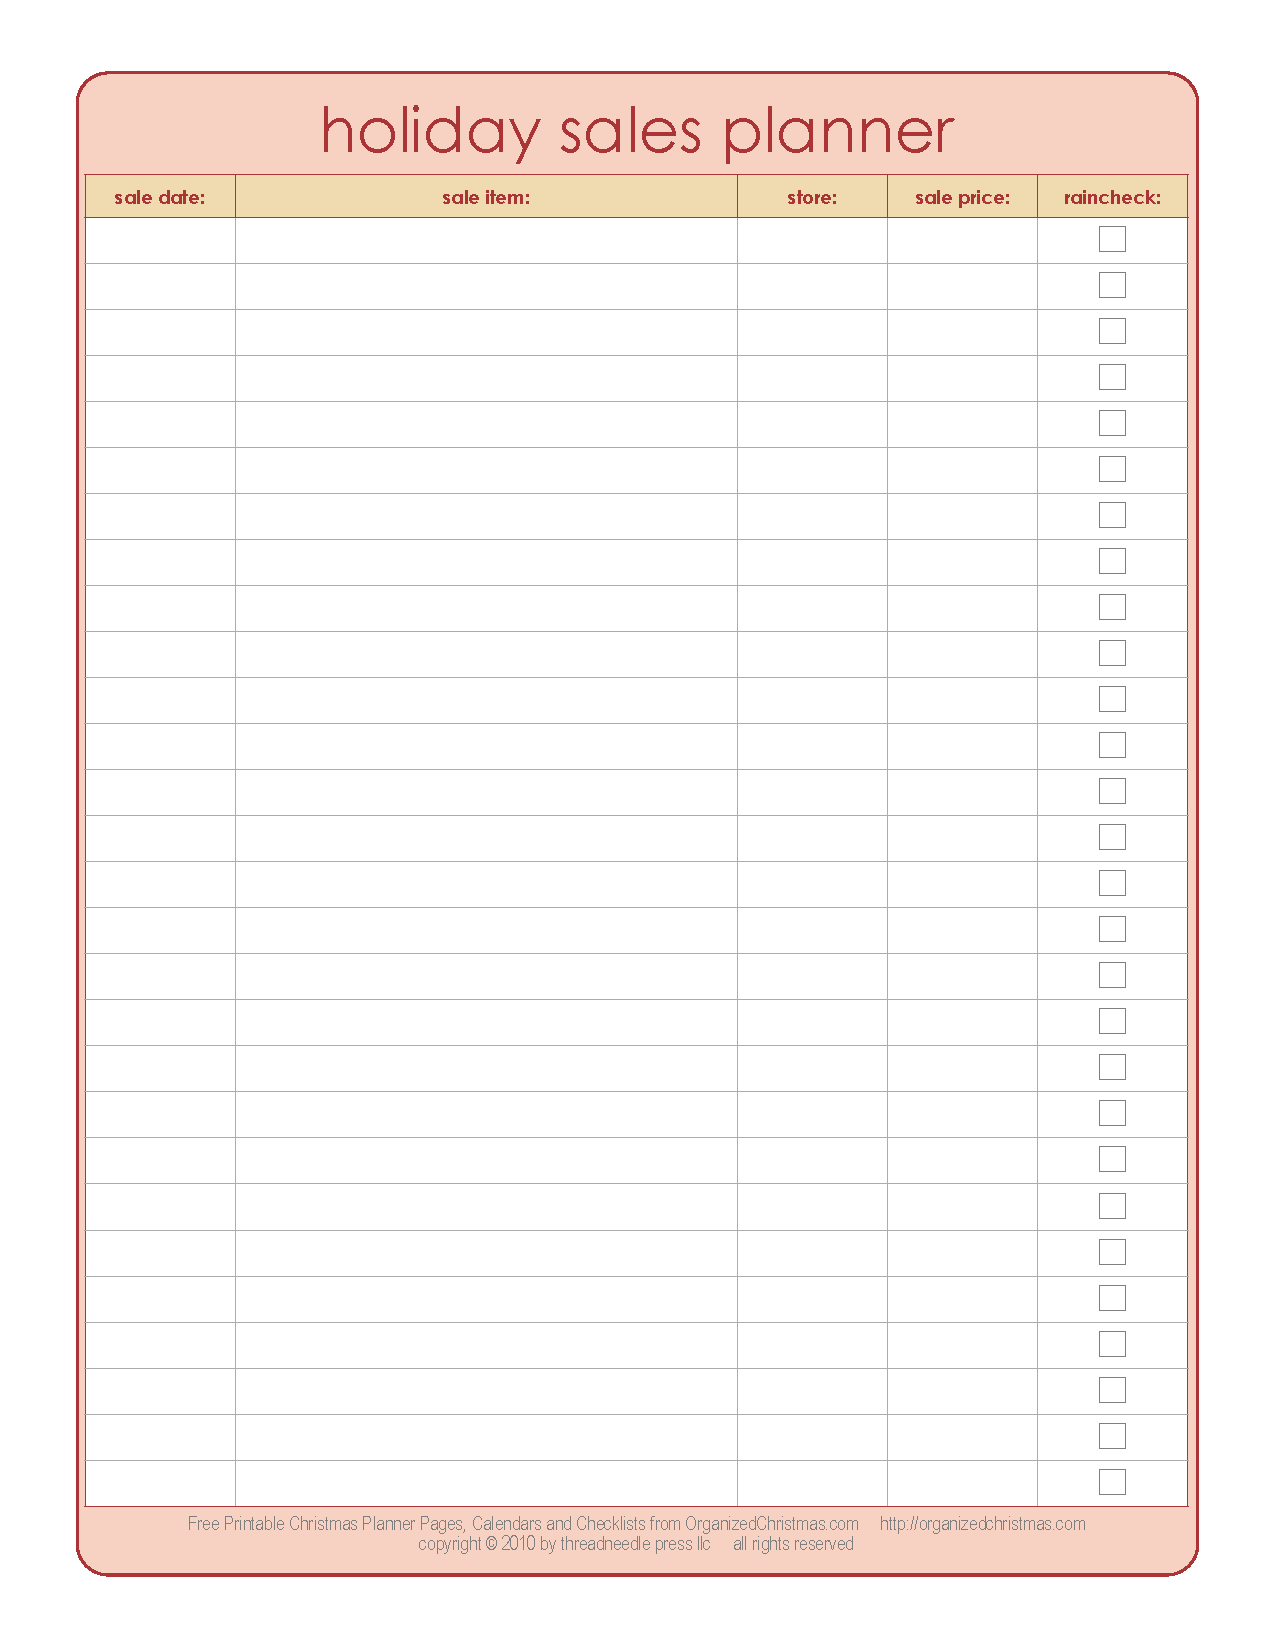 Black Friday Holiday Sales Planner